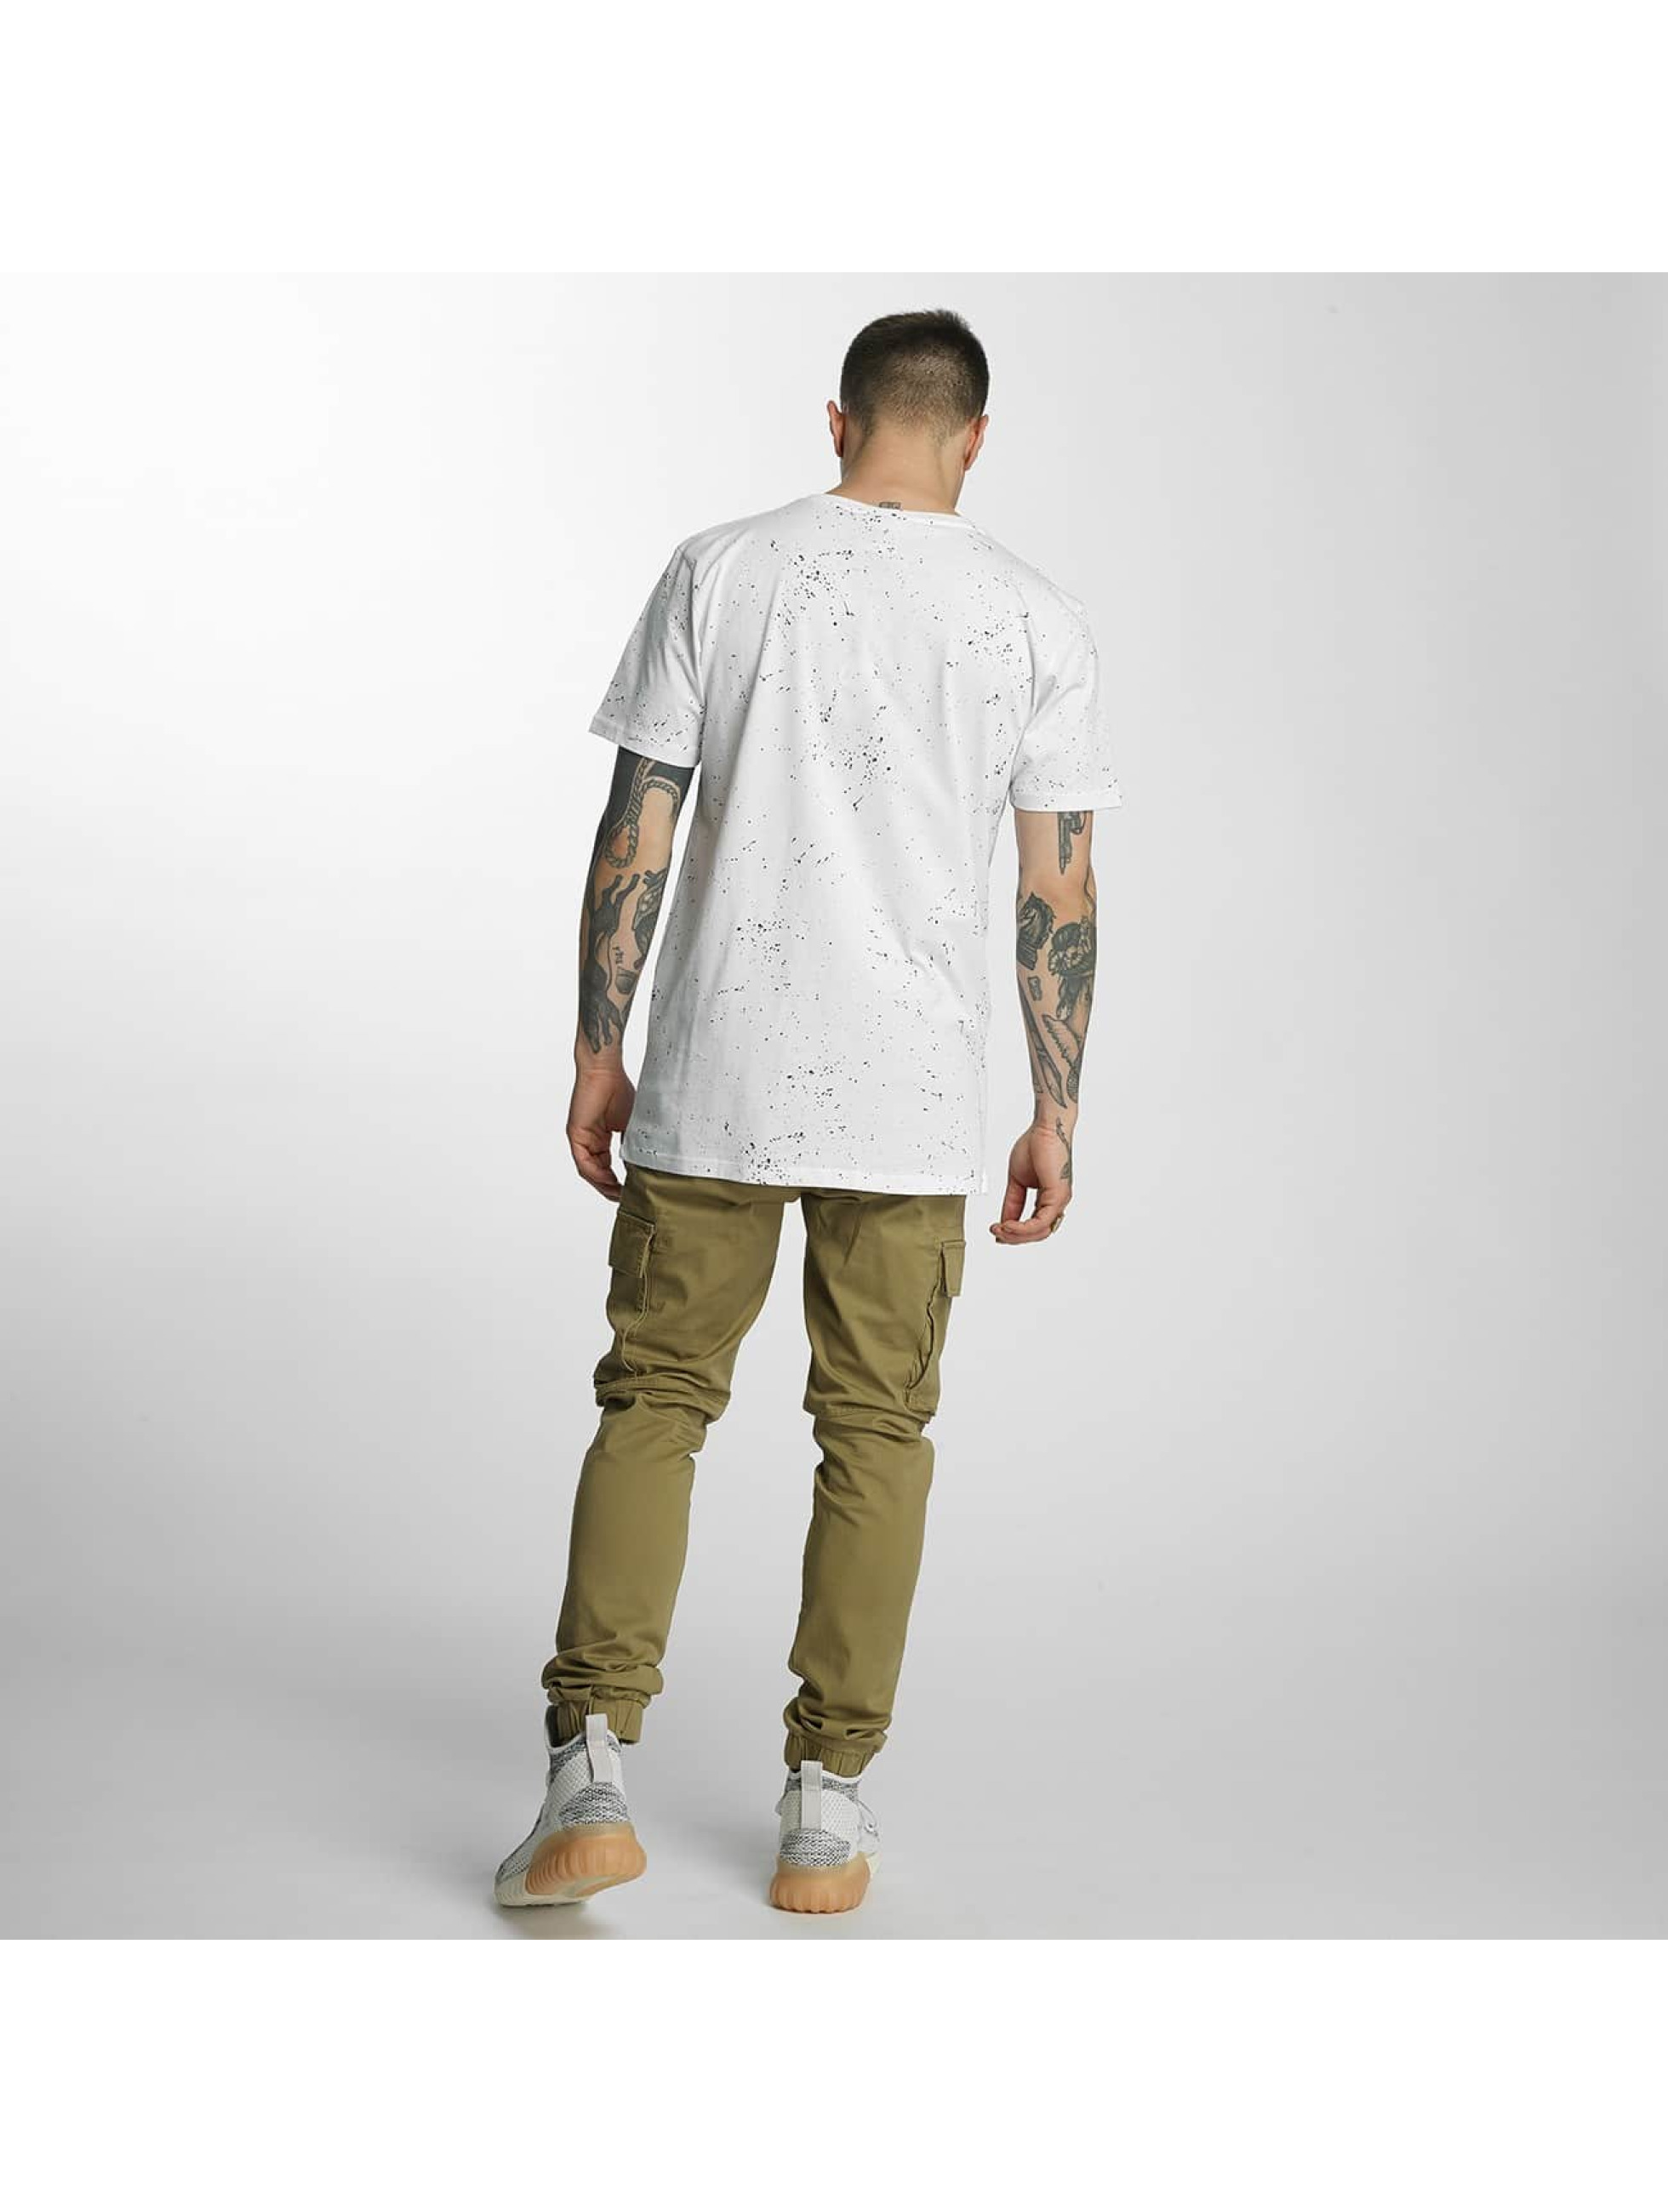 HYPE T-Shirt Aop Speckle white